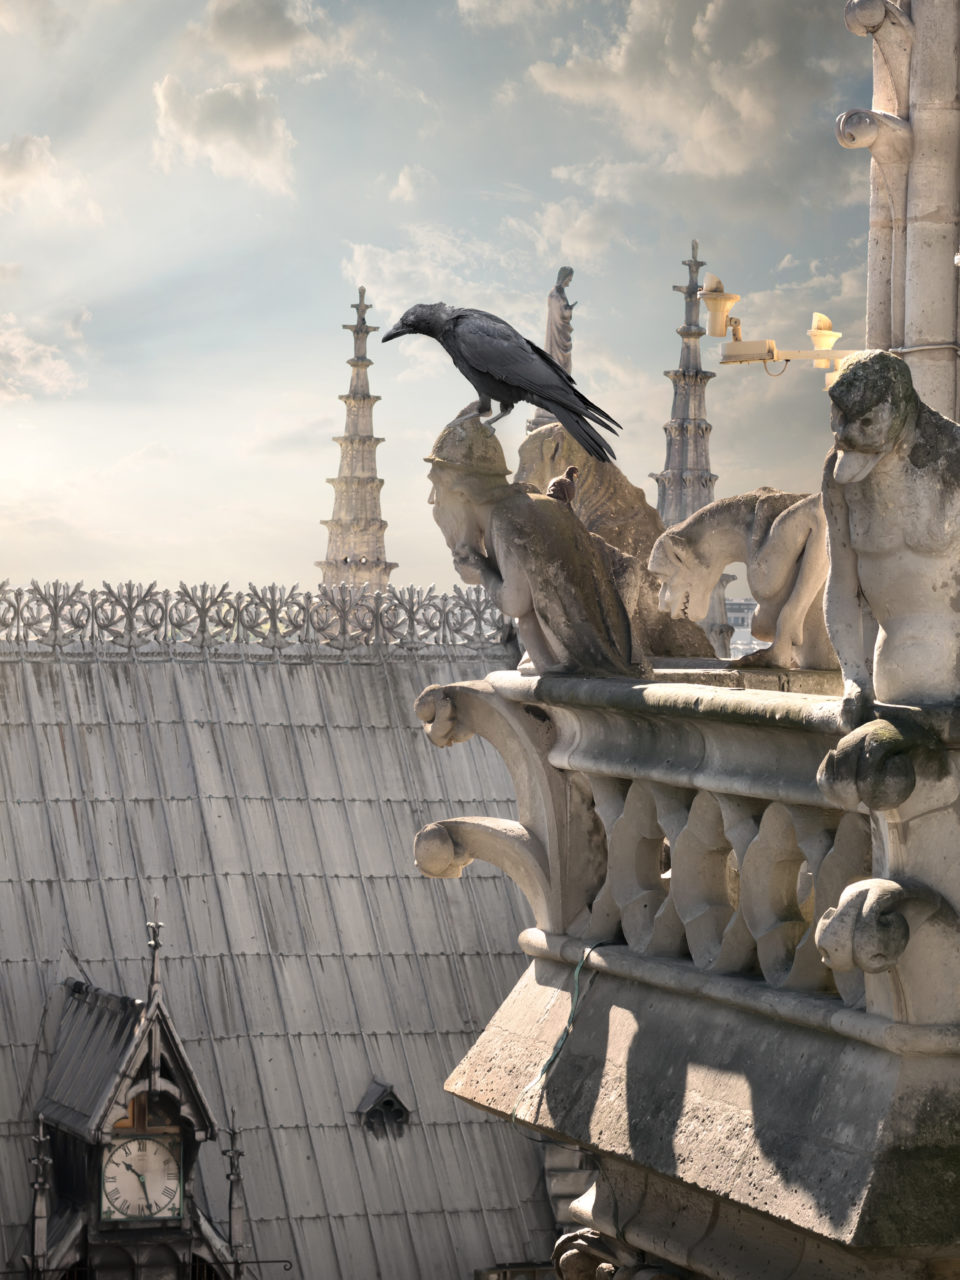 https://www.planetavenue.com/wp-content/uploads/2019/05/chimeras-on-notre-dame-PYPP9BD-960x1280.jpg